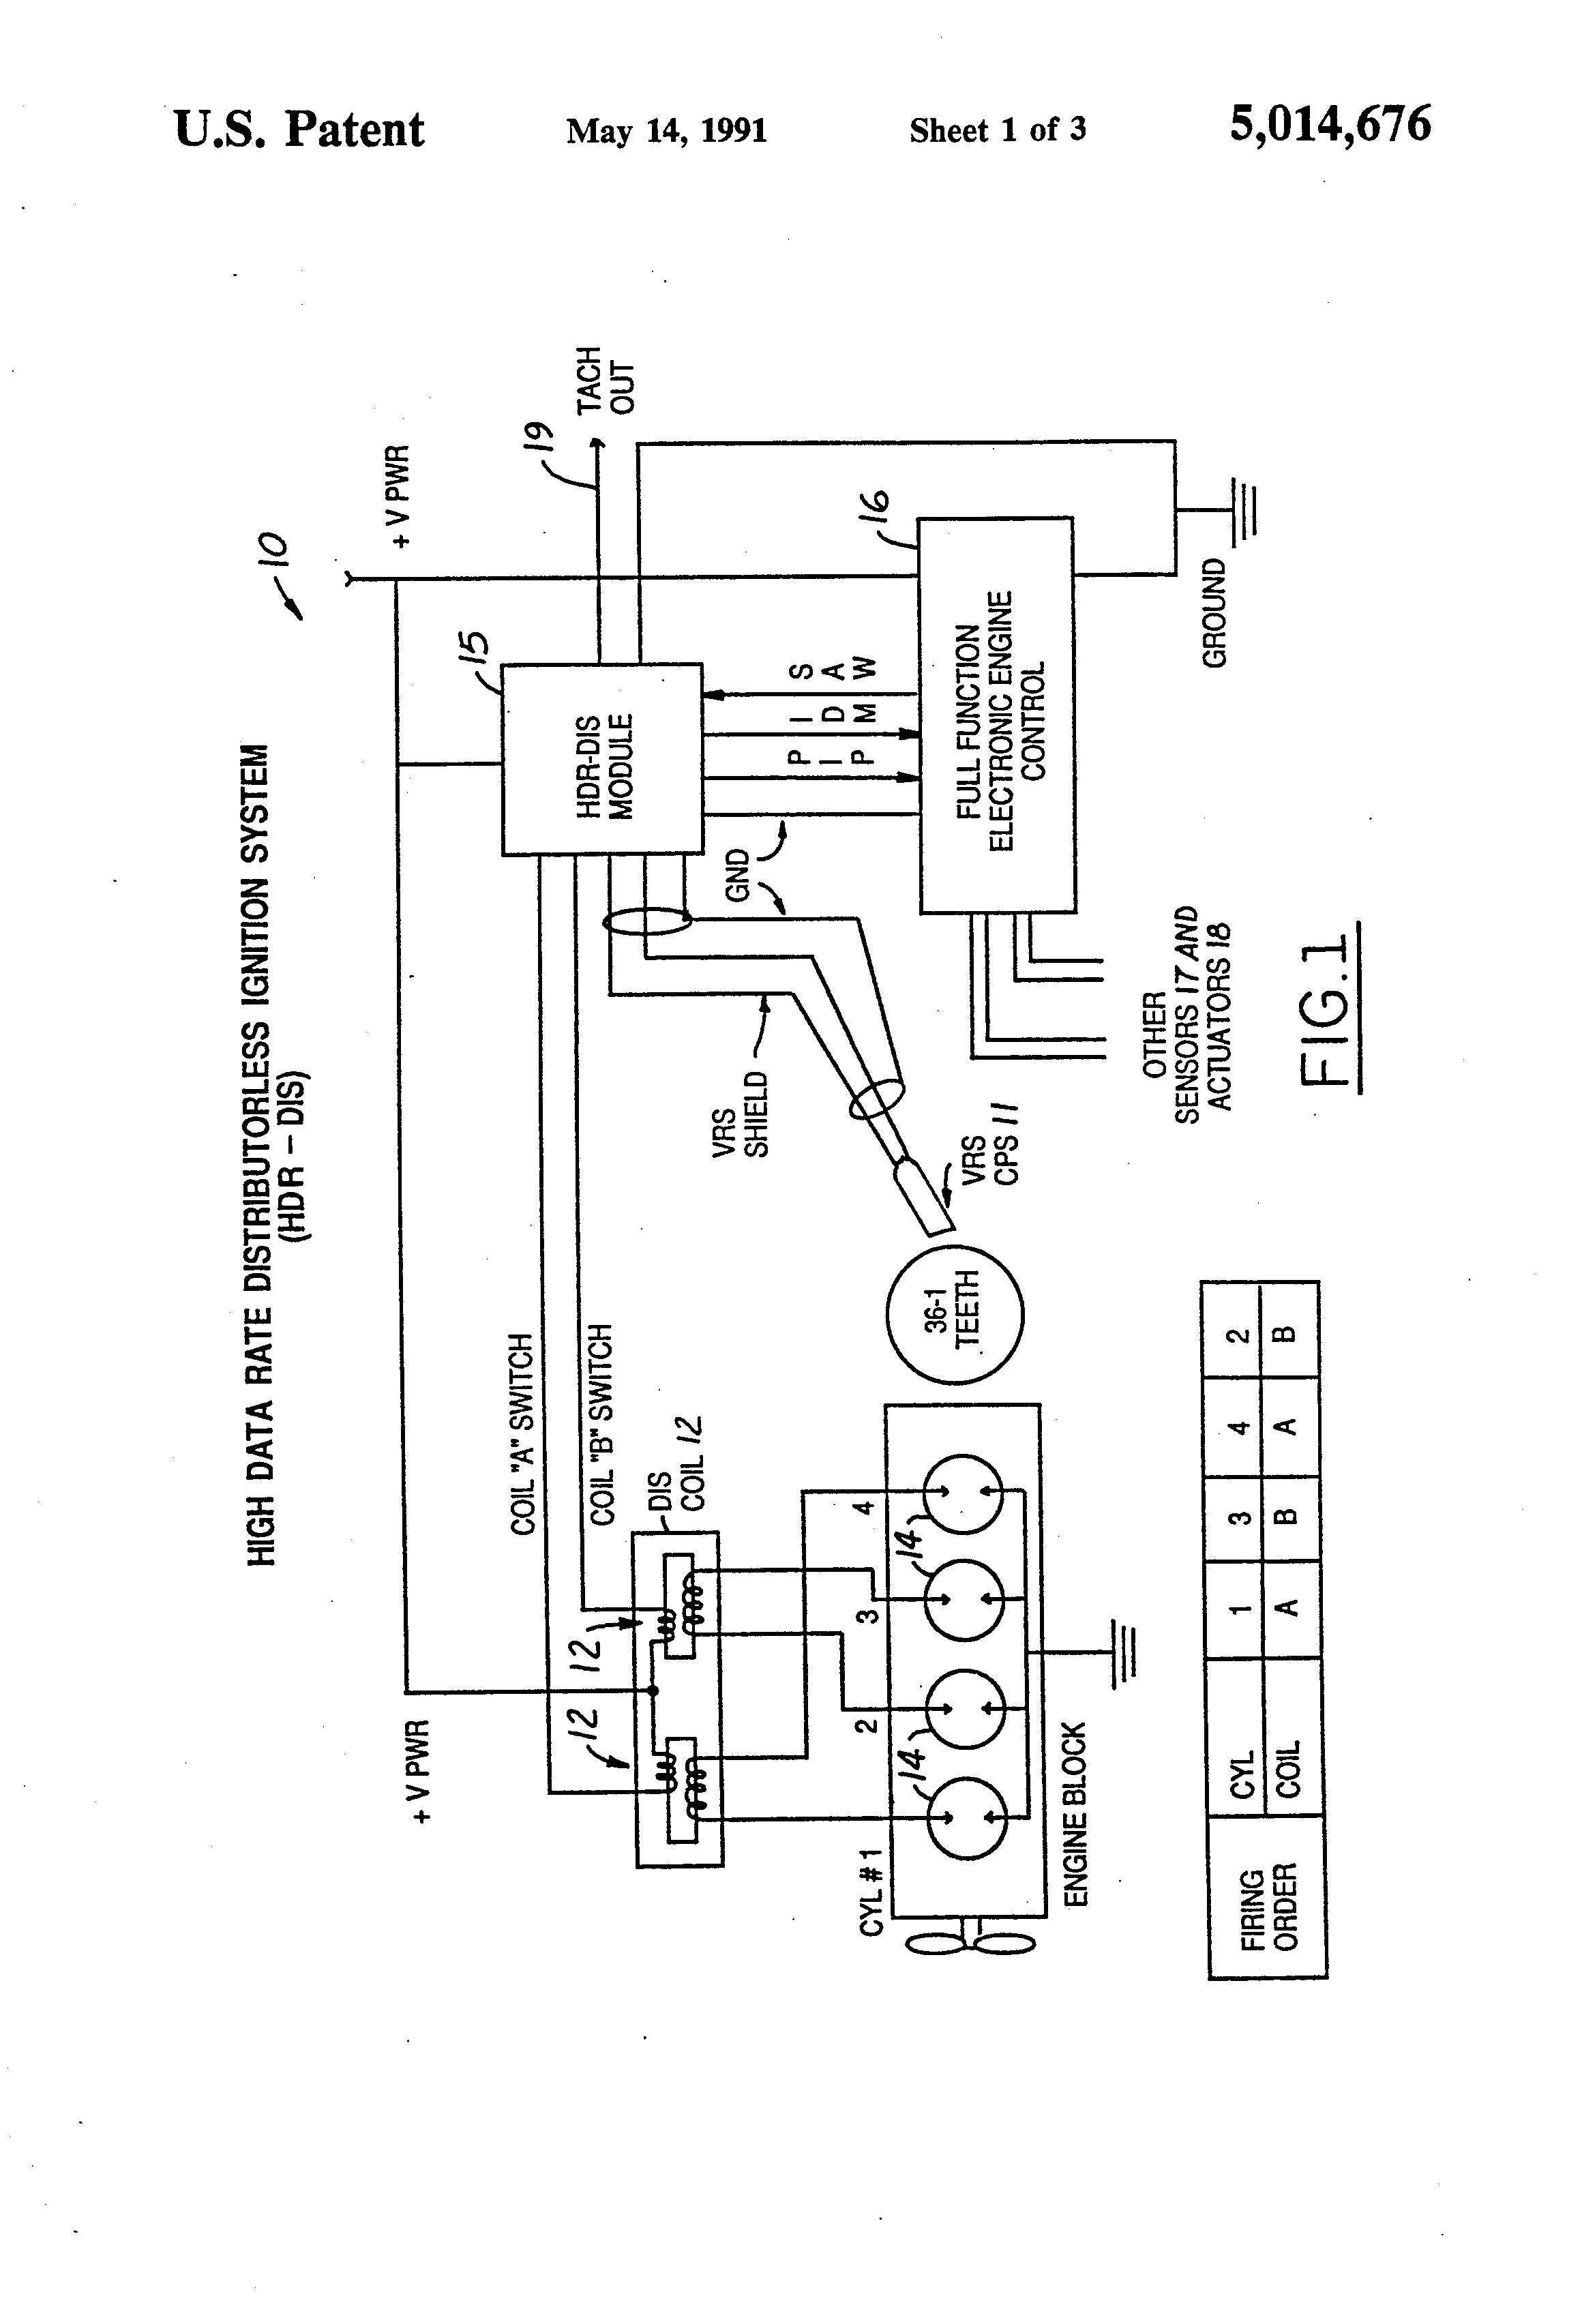 US5014676 1?resize\=665%2C977 wiring diagram dea355 microphone wiring diagrams \u2022 wiring diagram  at alyssarenee.co